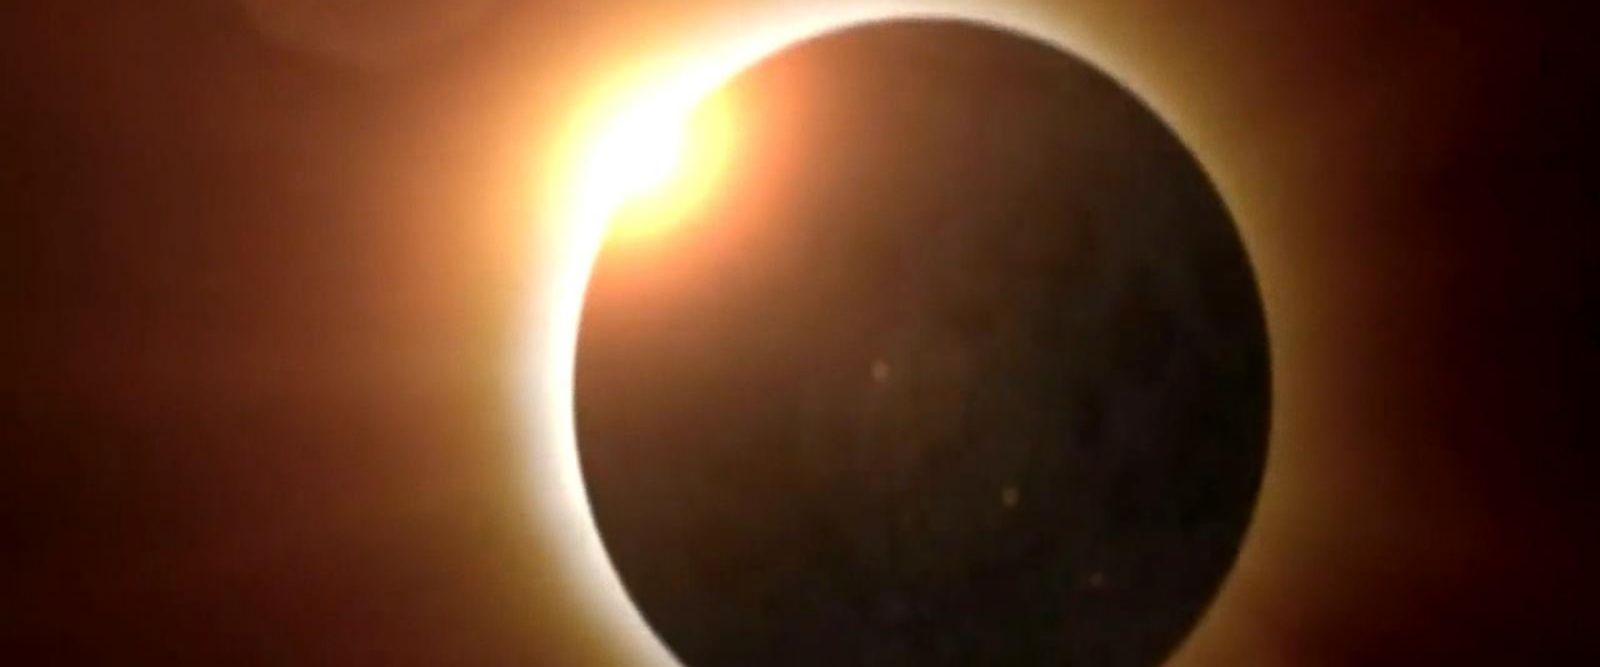 VIDEO: Hi-tech ways to experience the eclipse